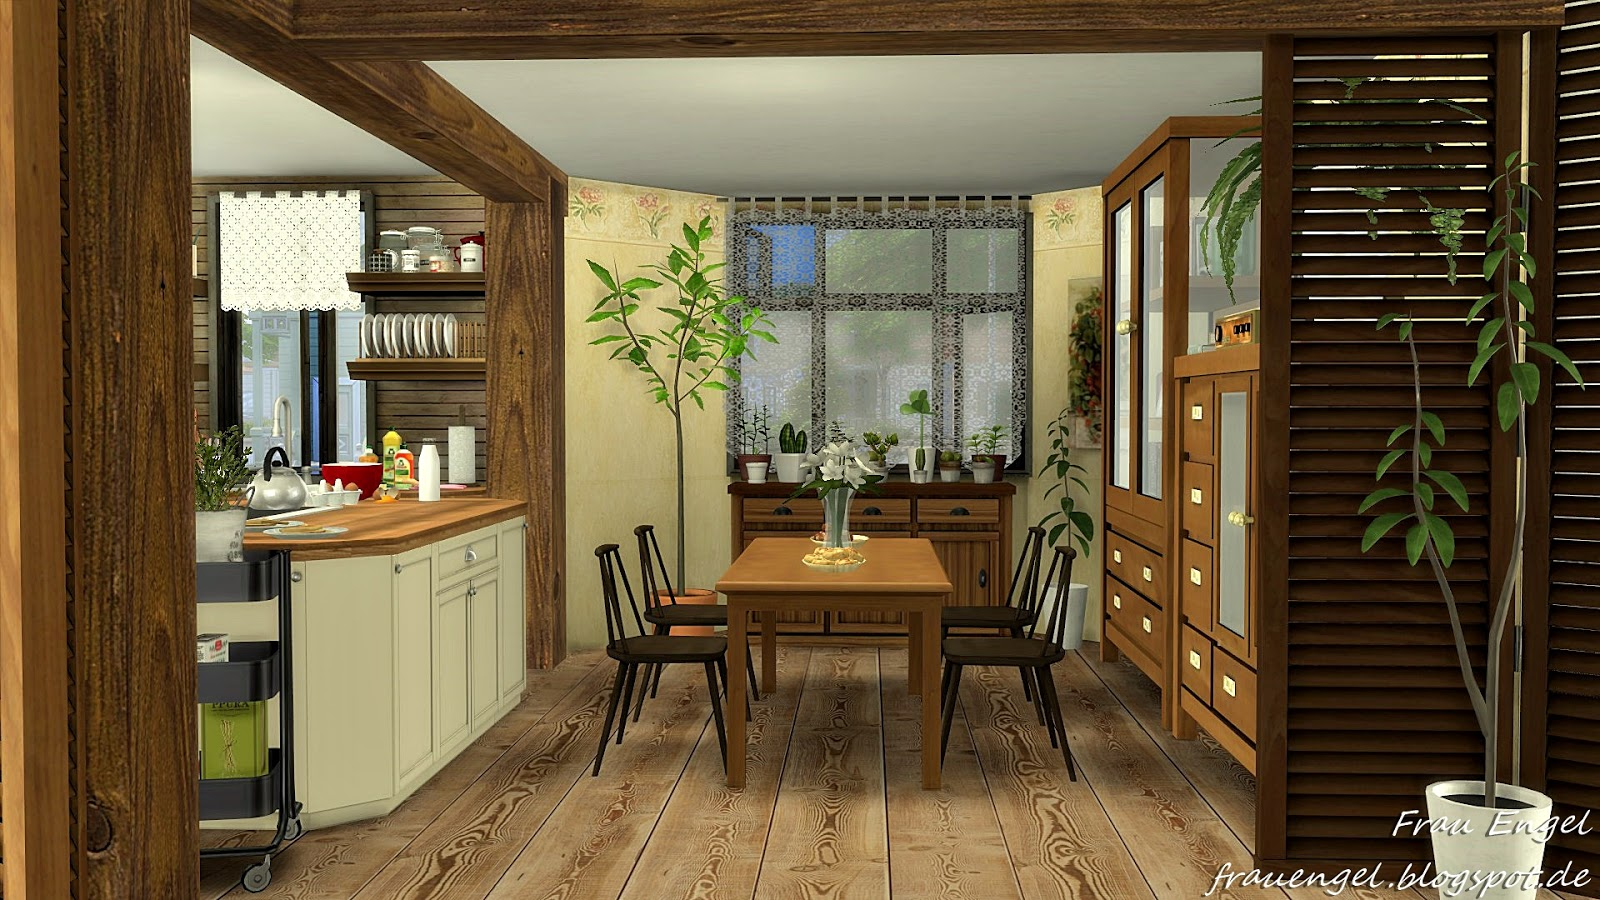 sims 4 cc's - the best: grandma's house by frau engel, Badezimmer ideen